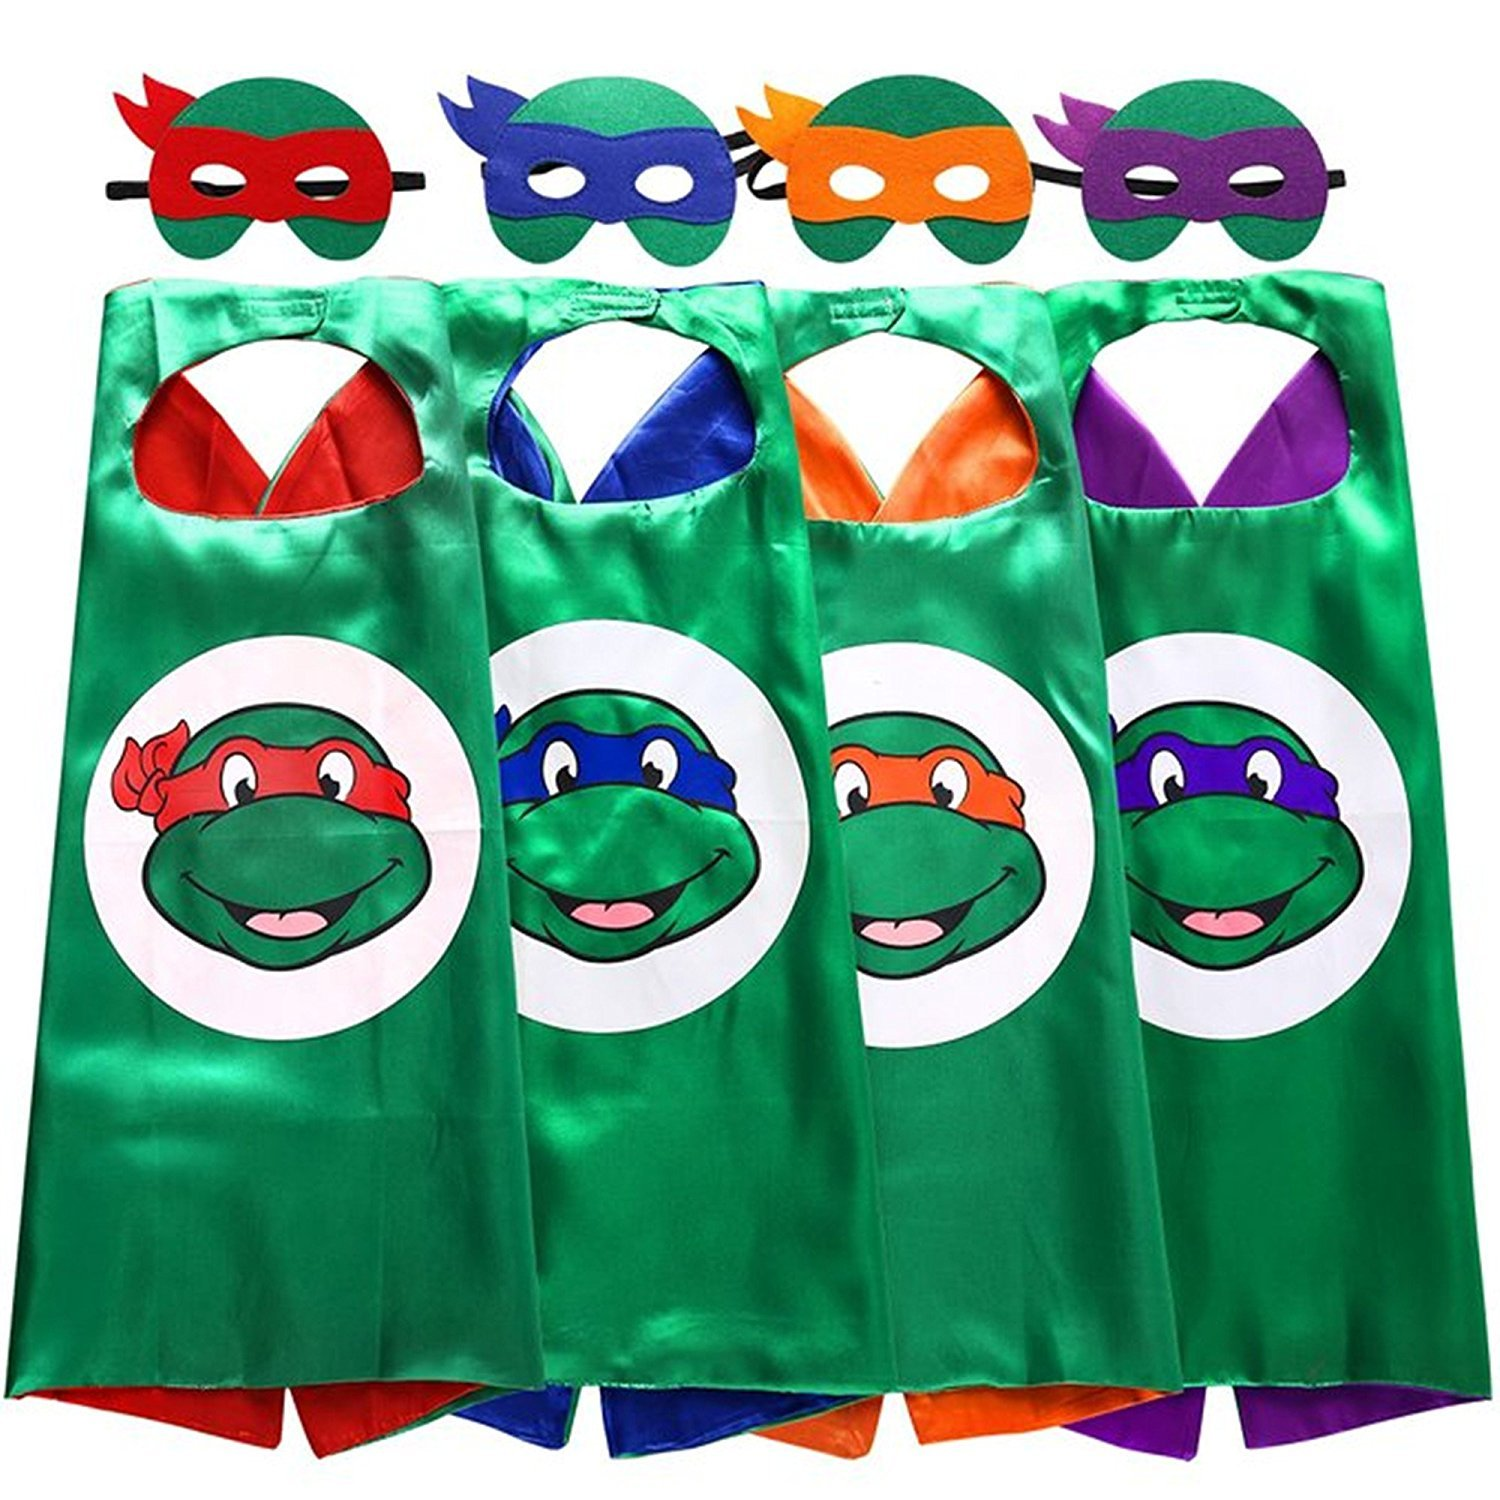 Sspent Superhero TMNT Cartoon Costume 4 Thermal Pransfer Satin Cape with Felt Mask